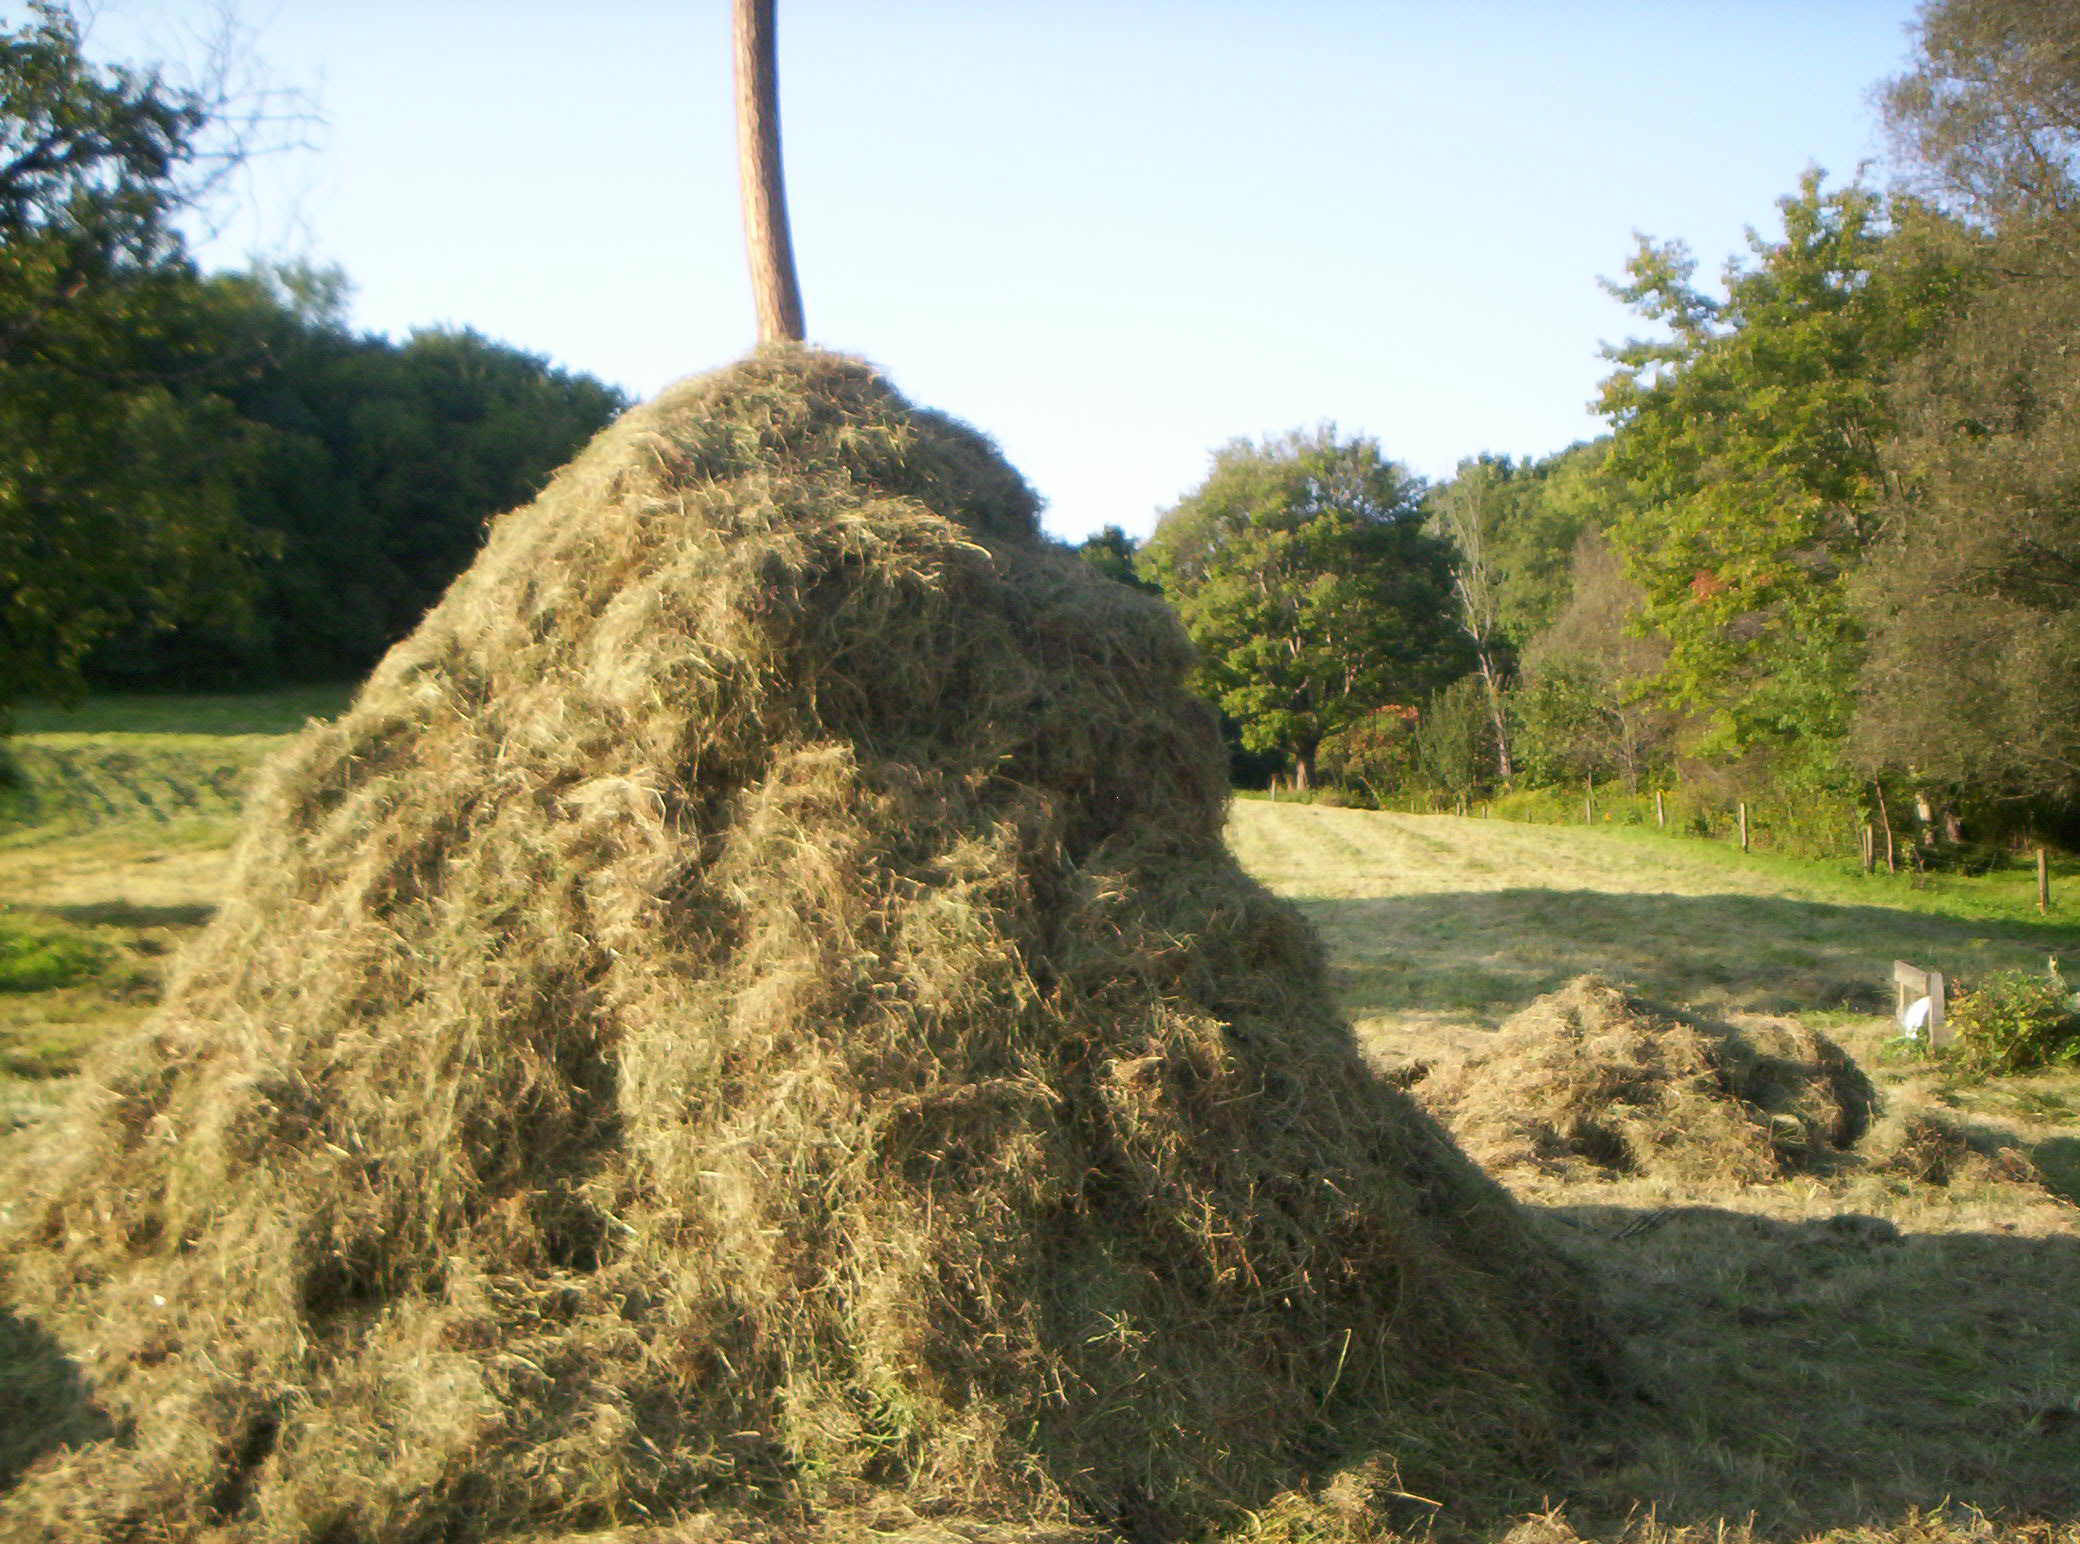 how to tell if hay is moldy